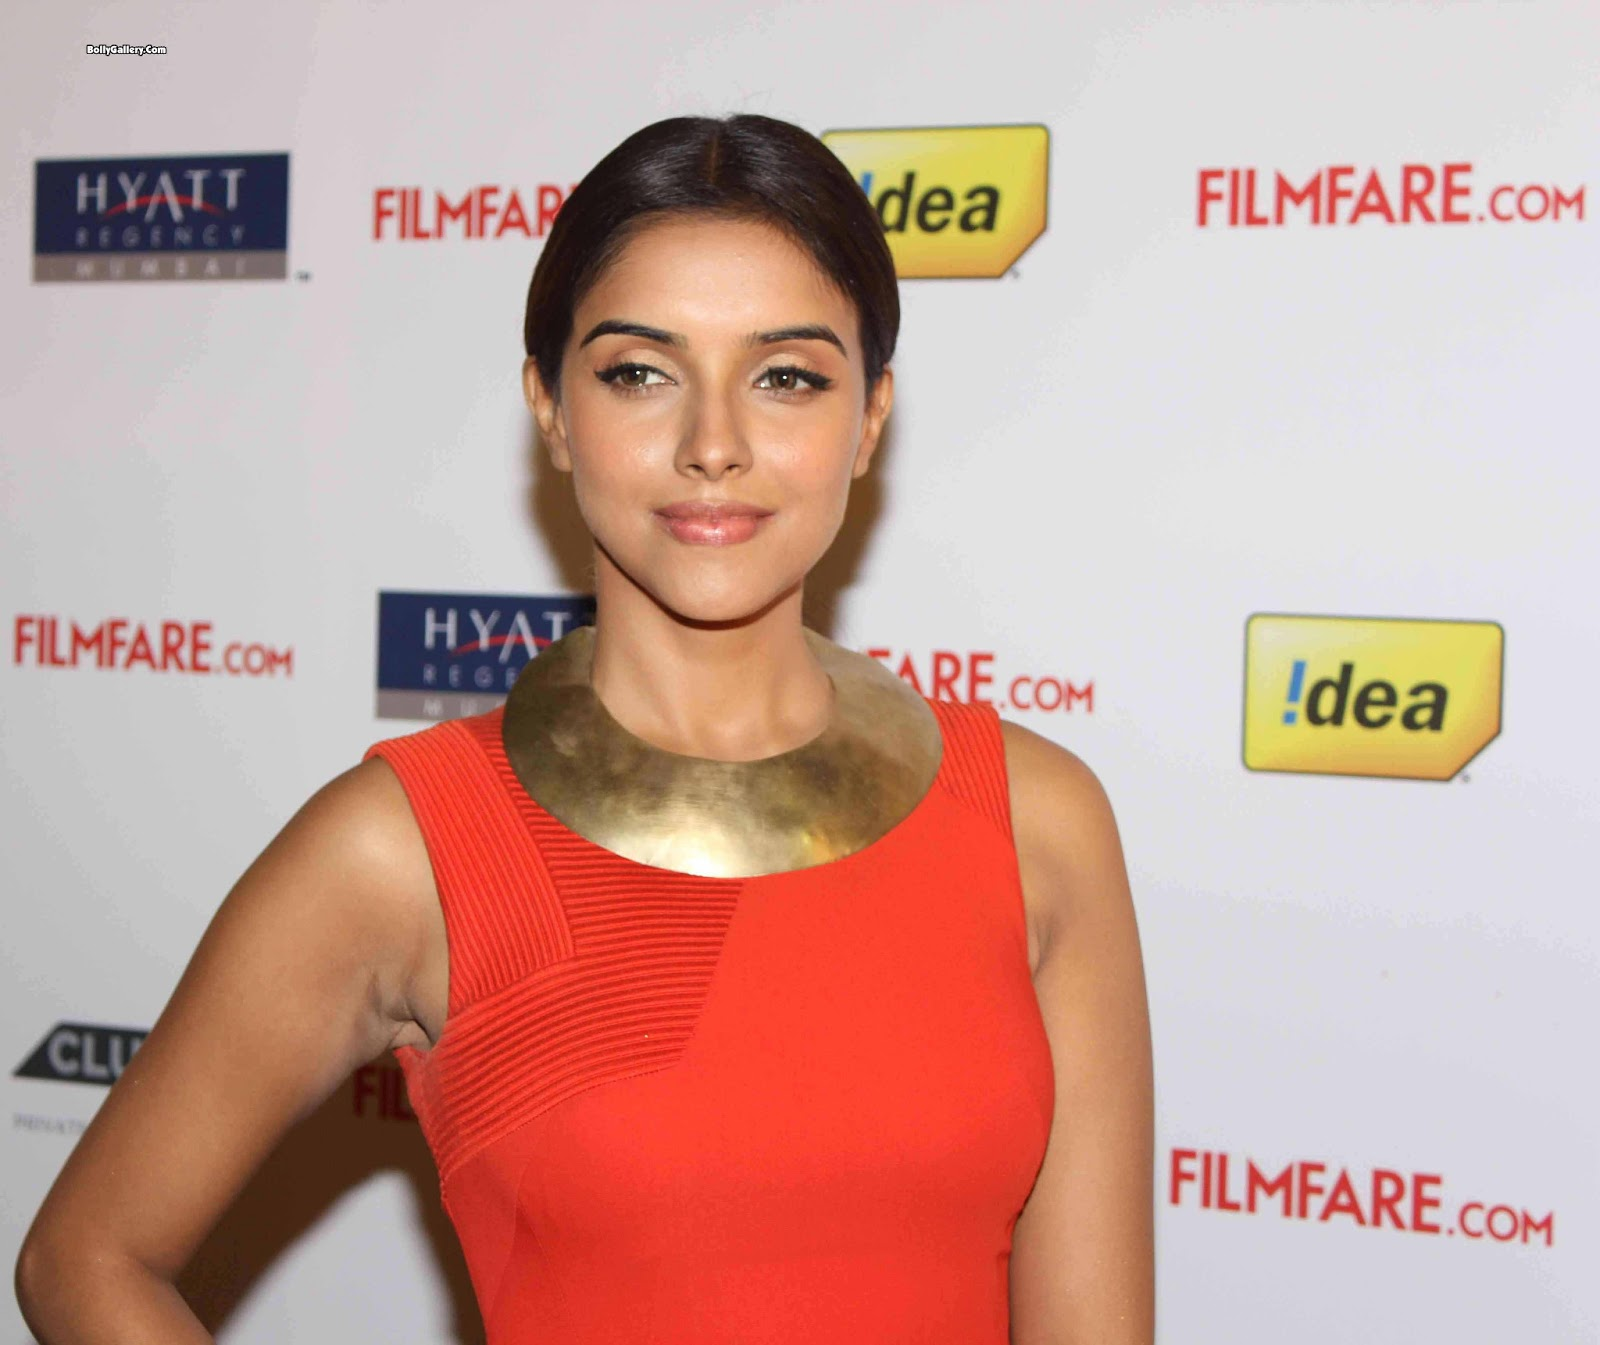 Bollywood Acterss Images: Asin images